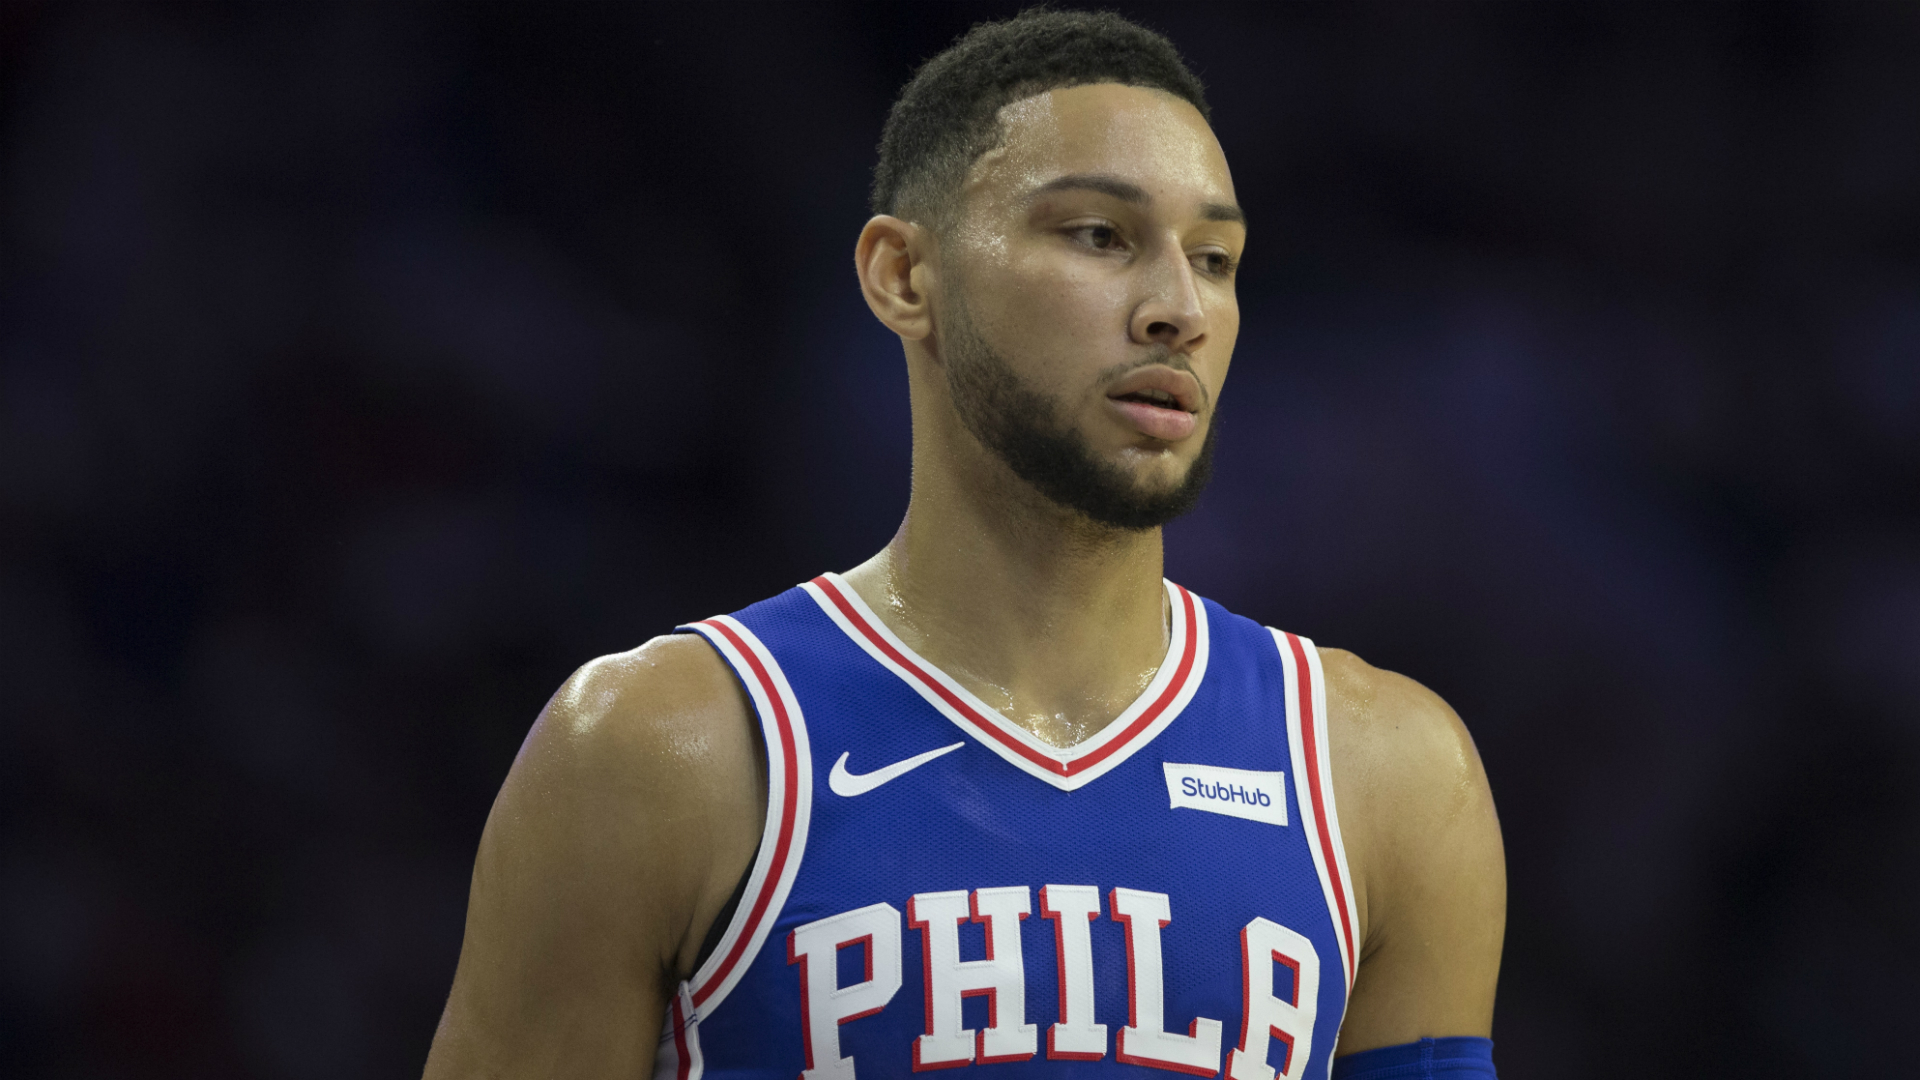 NBA playoffs wrap 2019: Clippers rally for shocking win over Warriors; 76ers bounce back vs. Nets